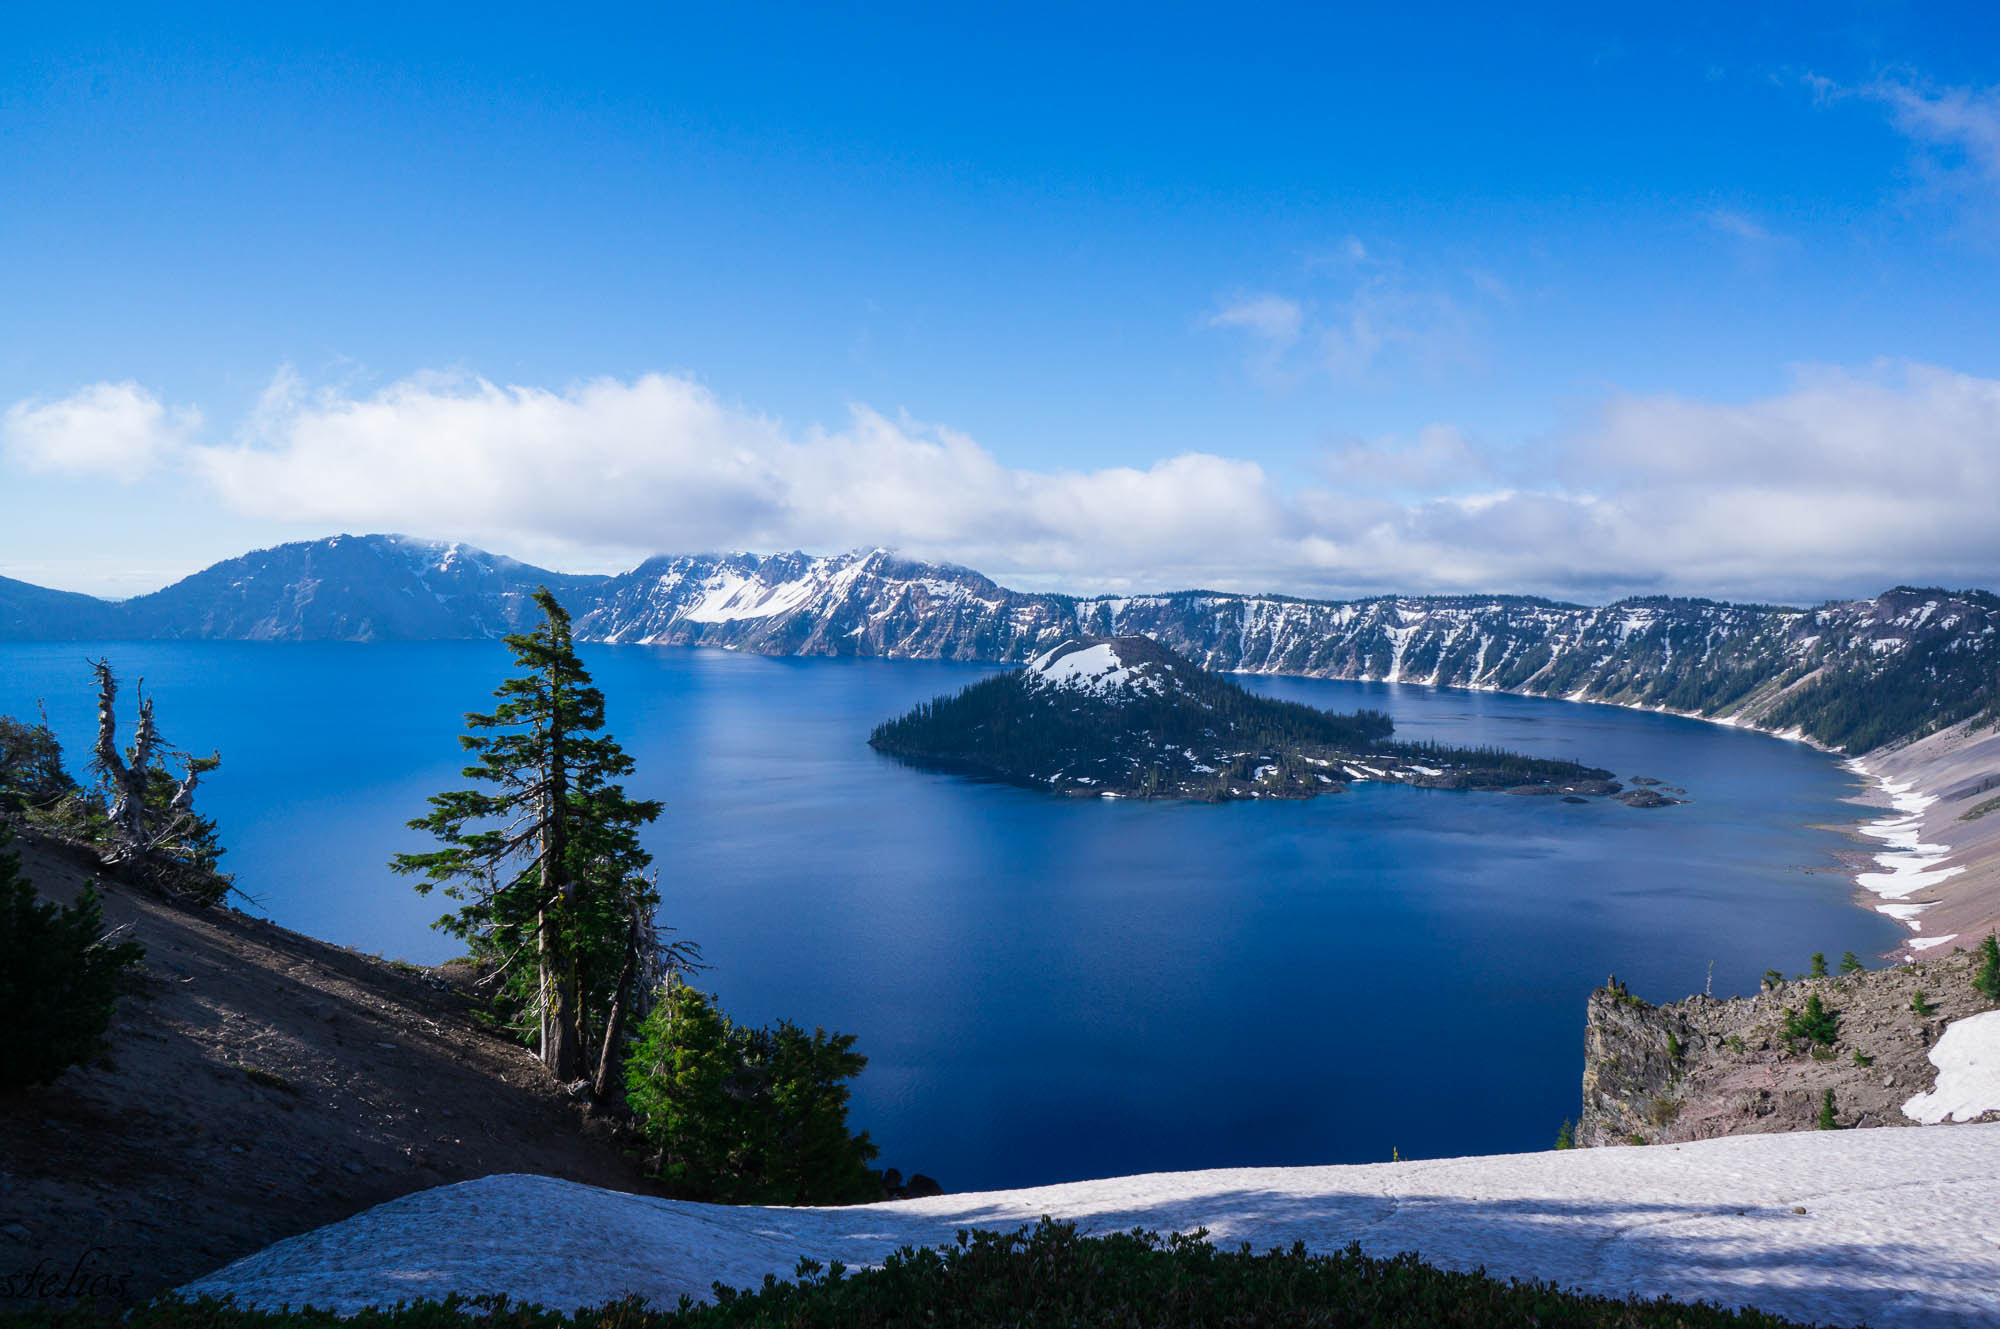 Photograph Crater Lake,Or by Stelios Drouganis on 500px